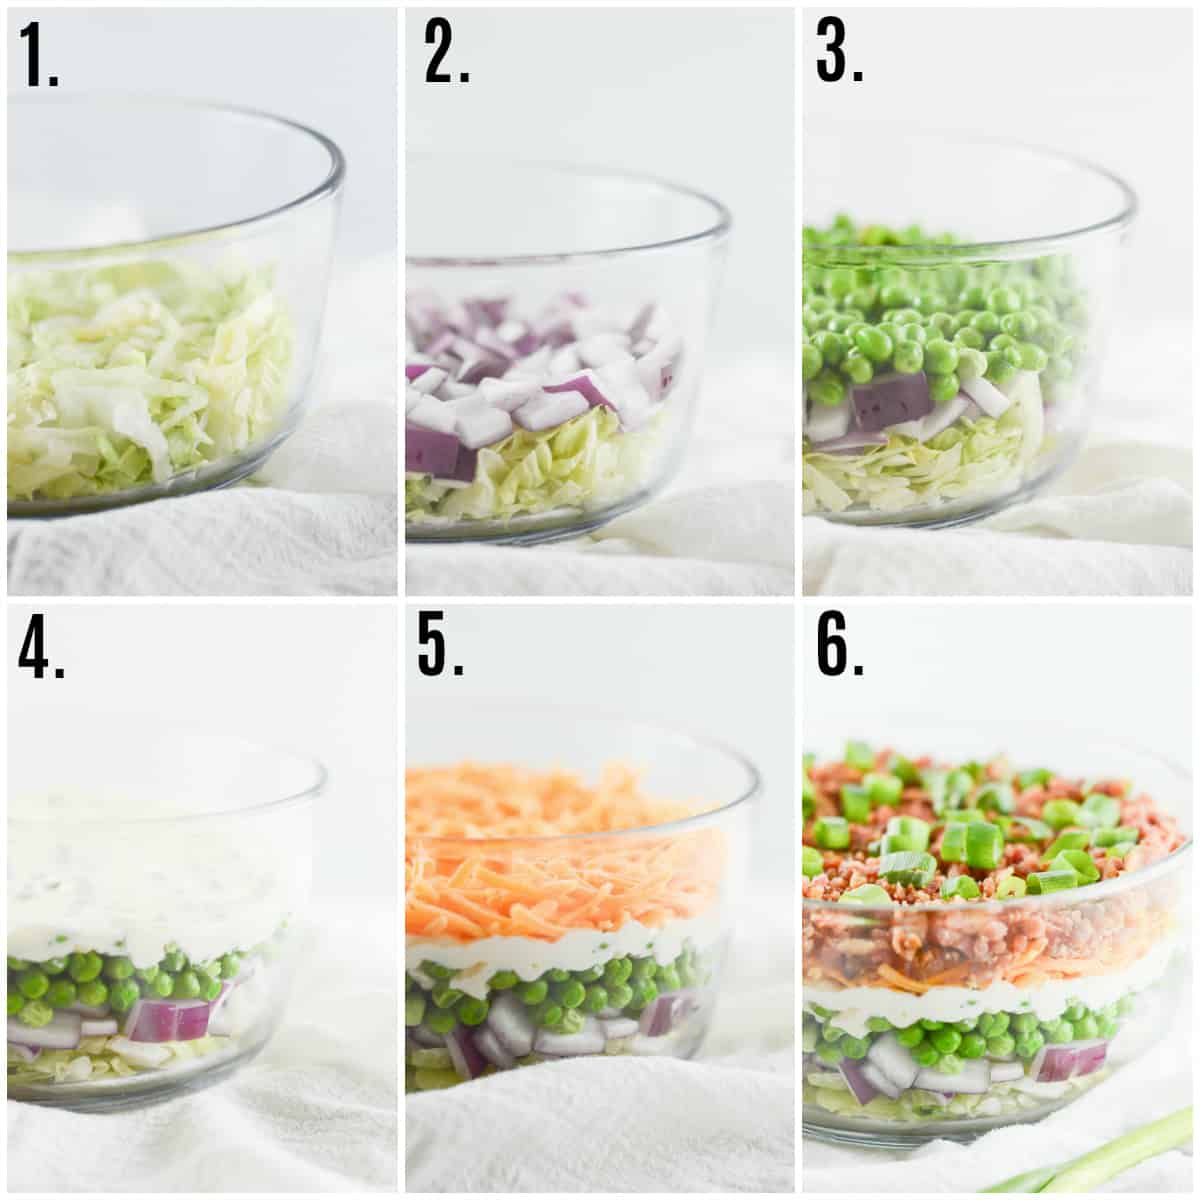 Step by step photos on how to make Seven Layer Salad